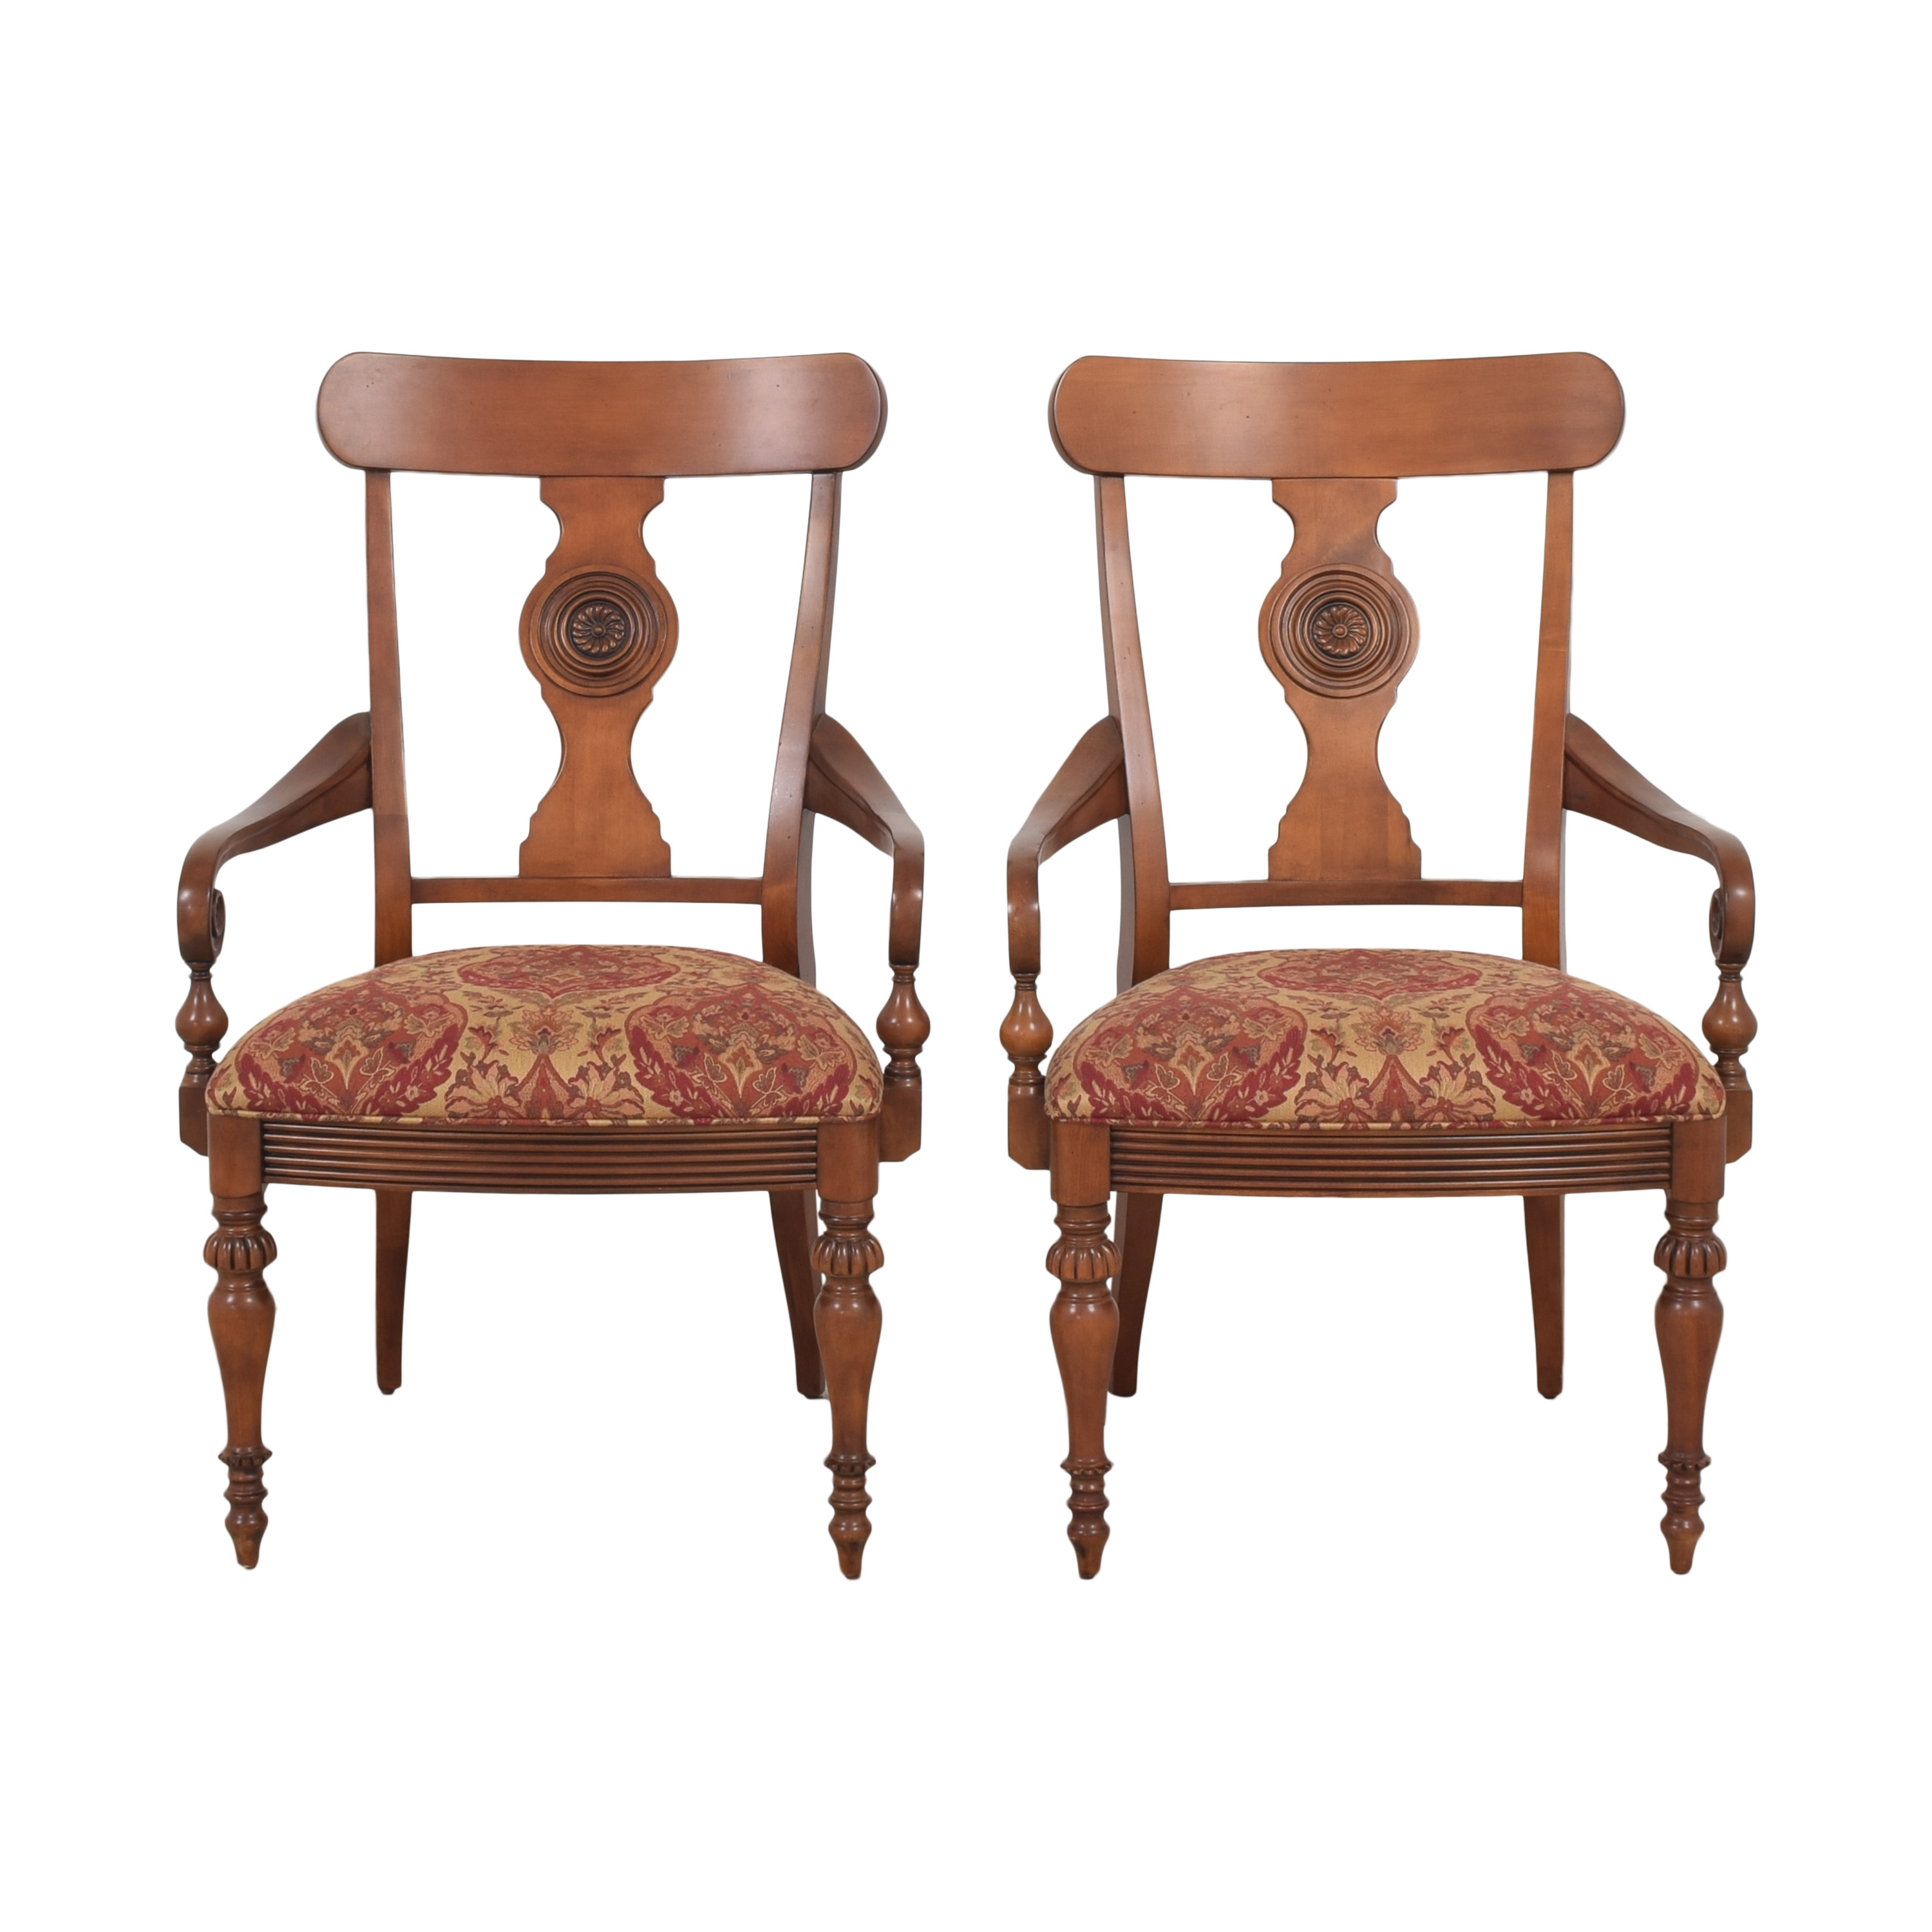 Ethan Allen British Classics Dining Arm Chairs / Chairs